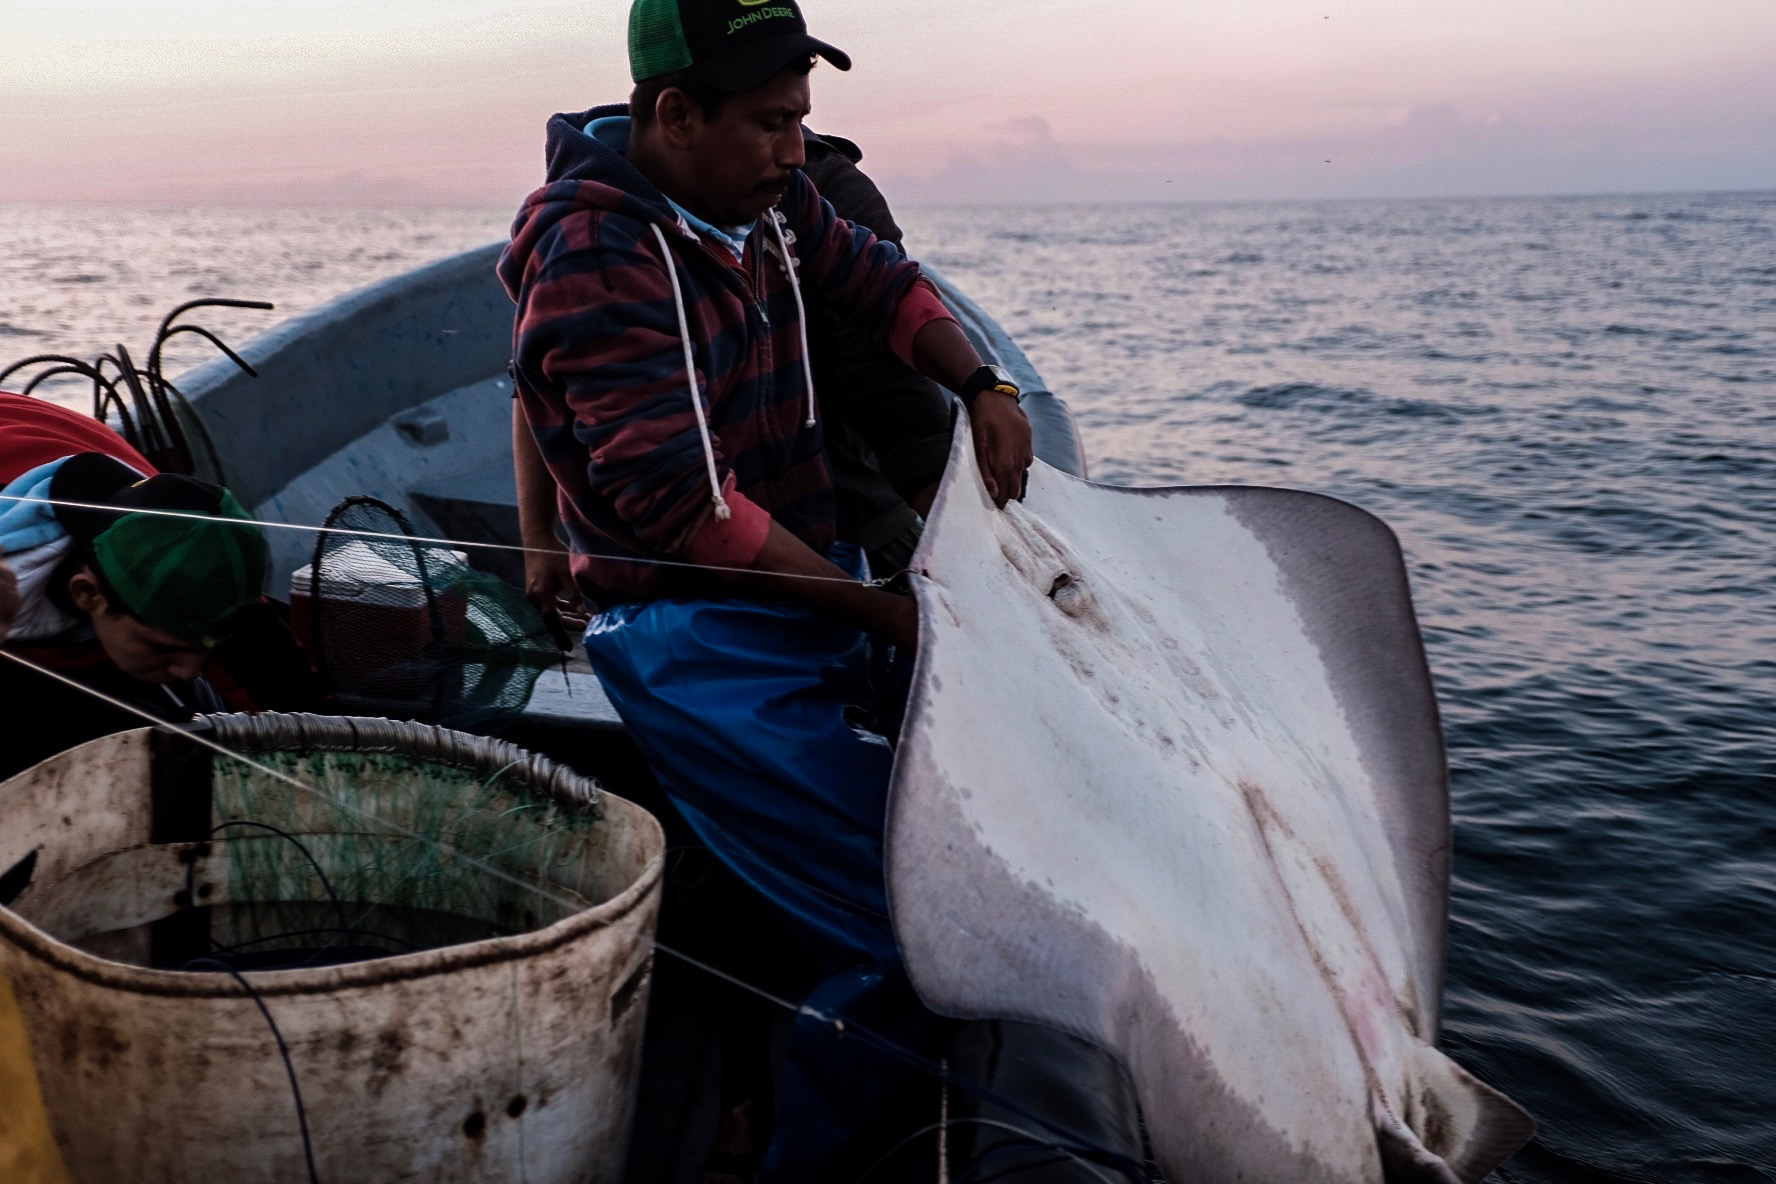 """The Fish"" - In a marine landscape scarred by blasts, few fish remain to be caught. So now stingrays are hooked and hauled, thrashing and flailing frantically out of the water. Their fins are sliced off and sold as imitation shark fin. Despite the scarce haul, the captain distributes most of the fish to the men who helped load the boat the night before."